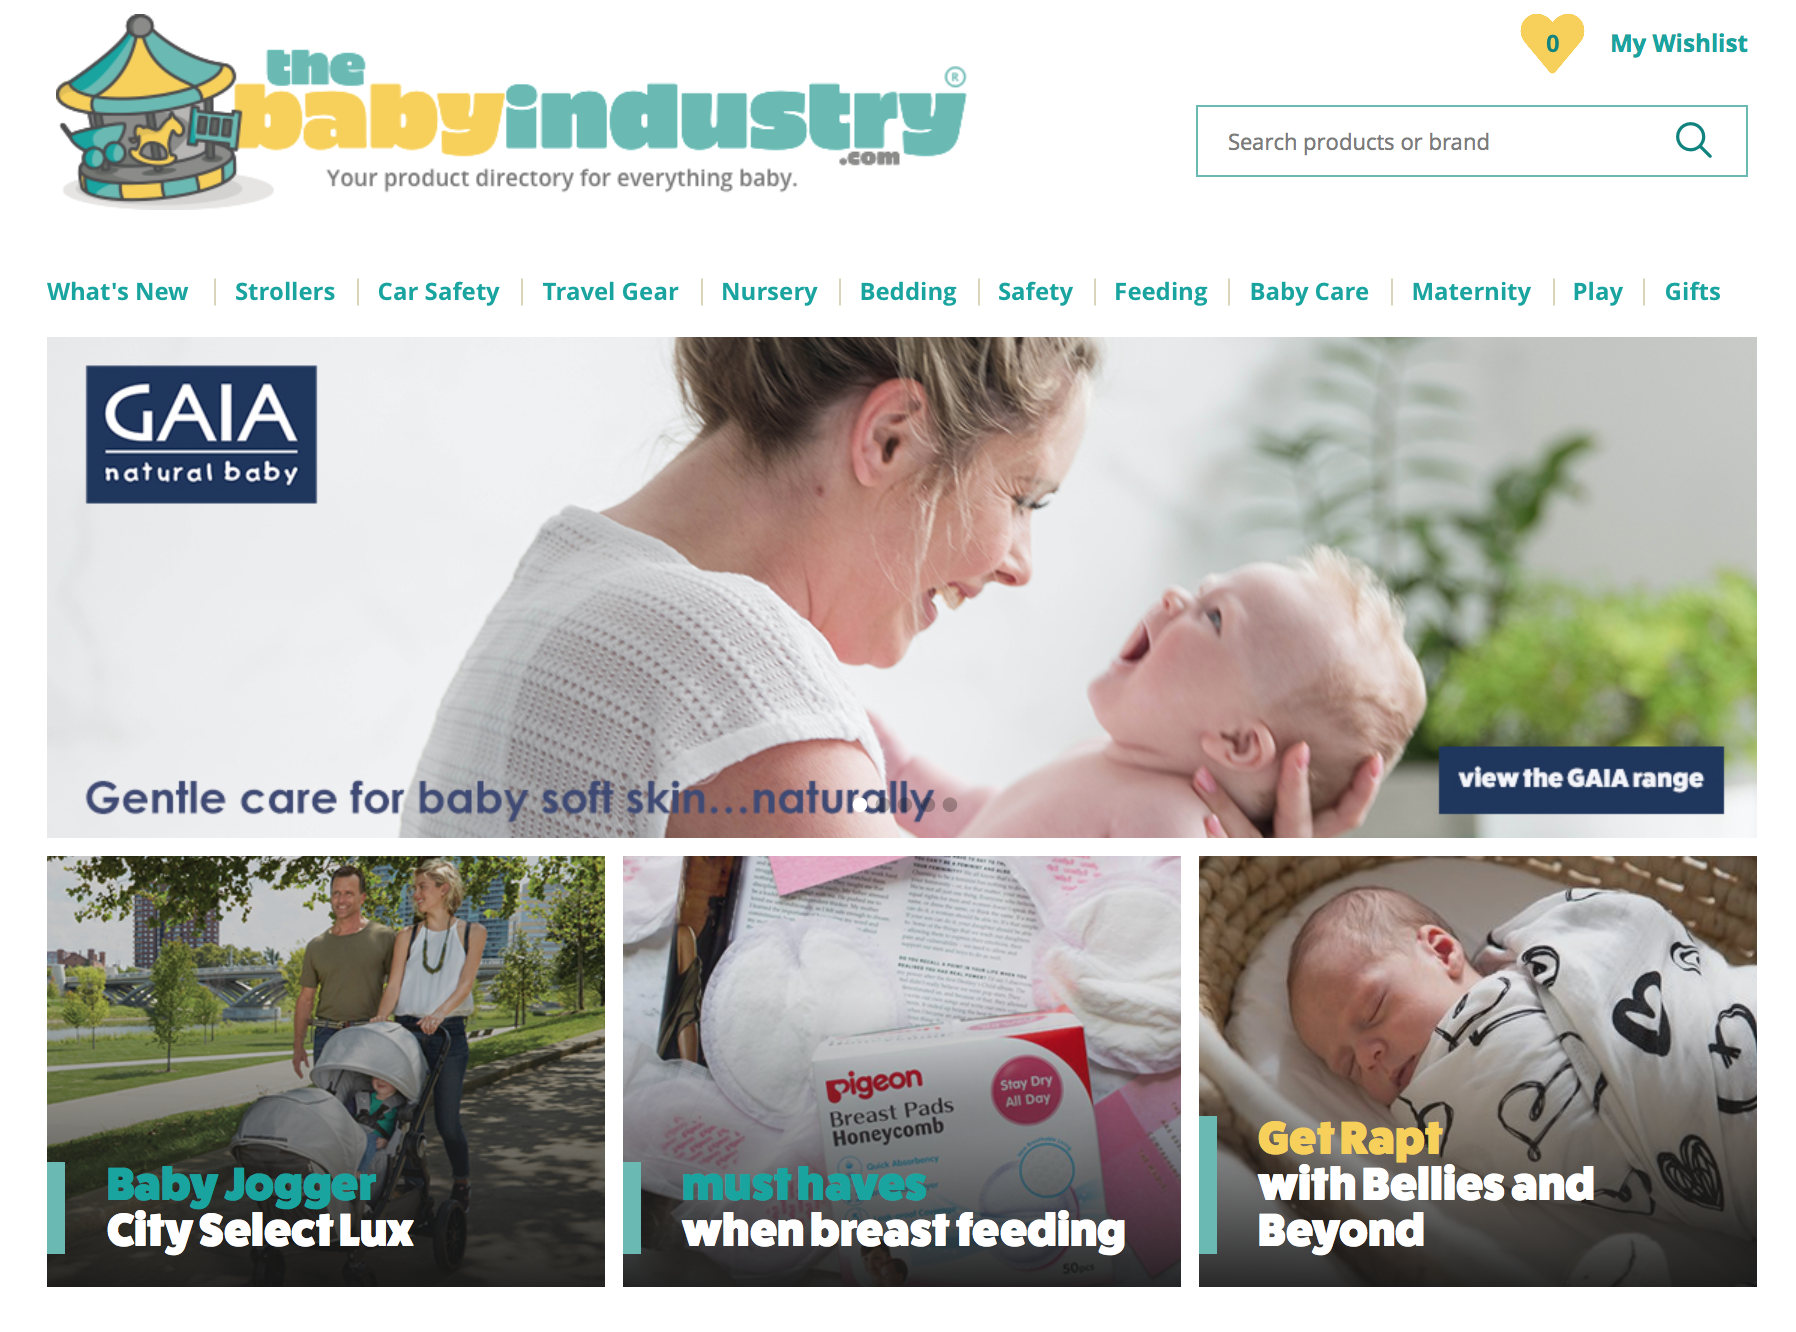 The Baby Industry